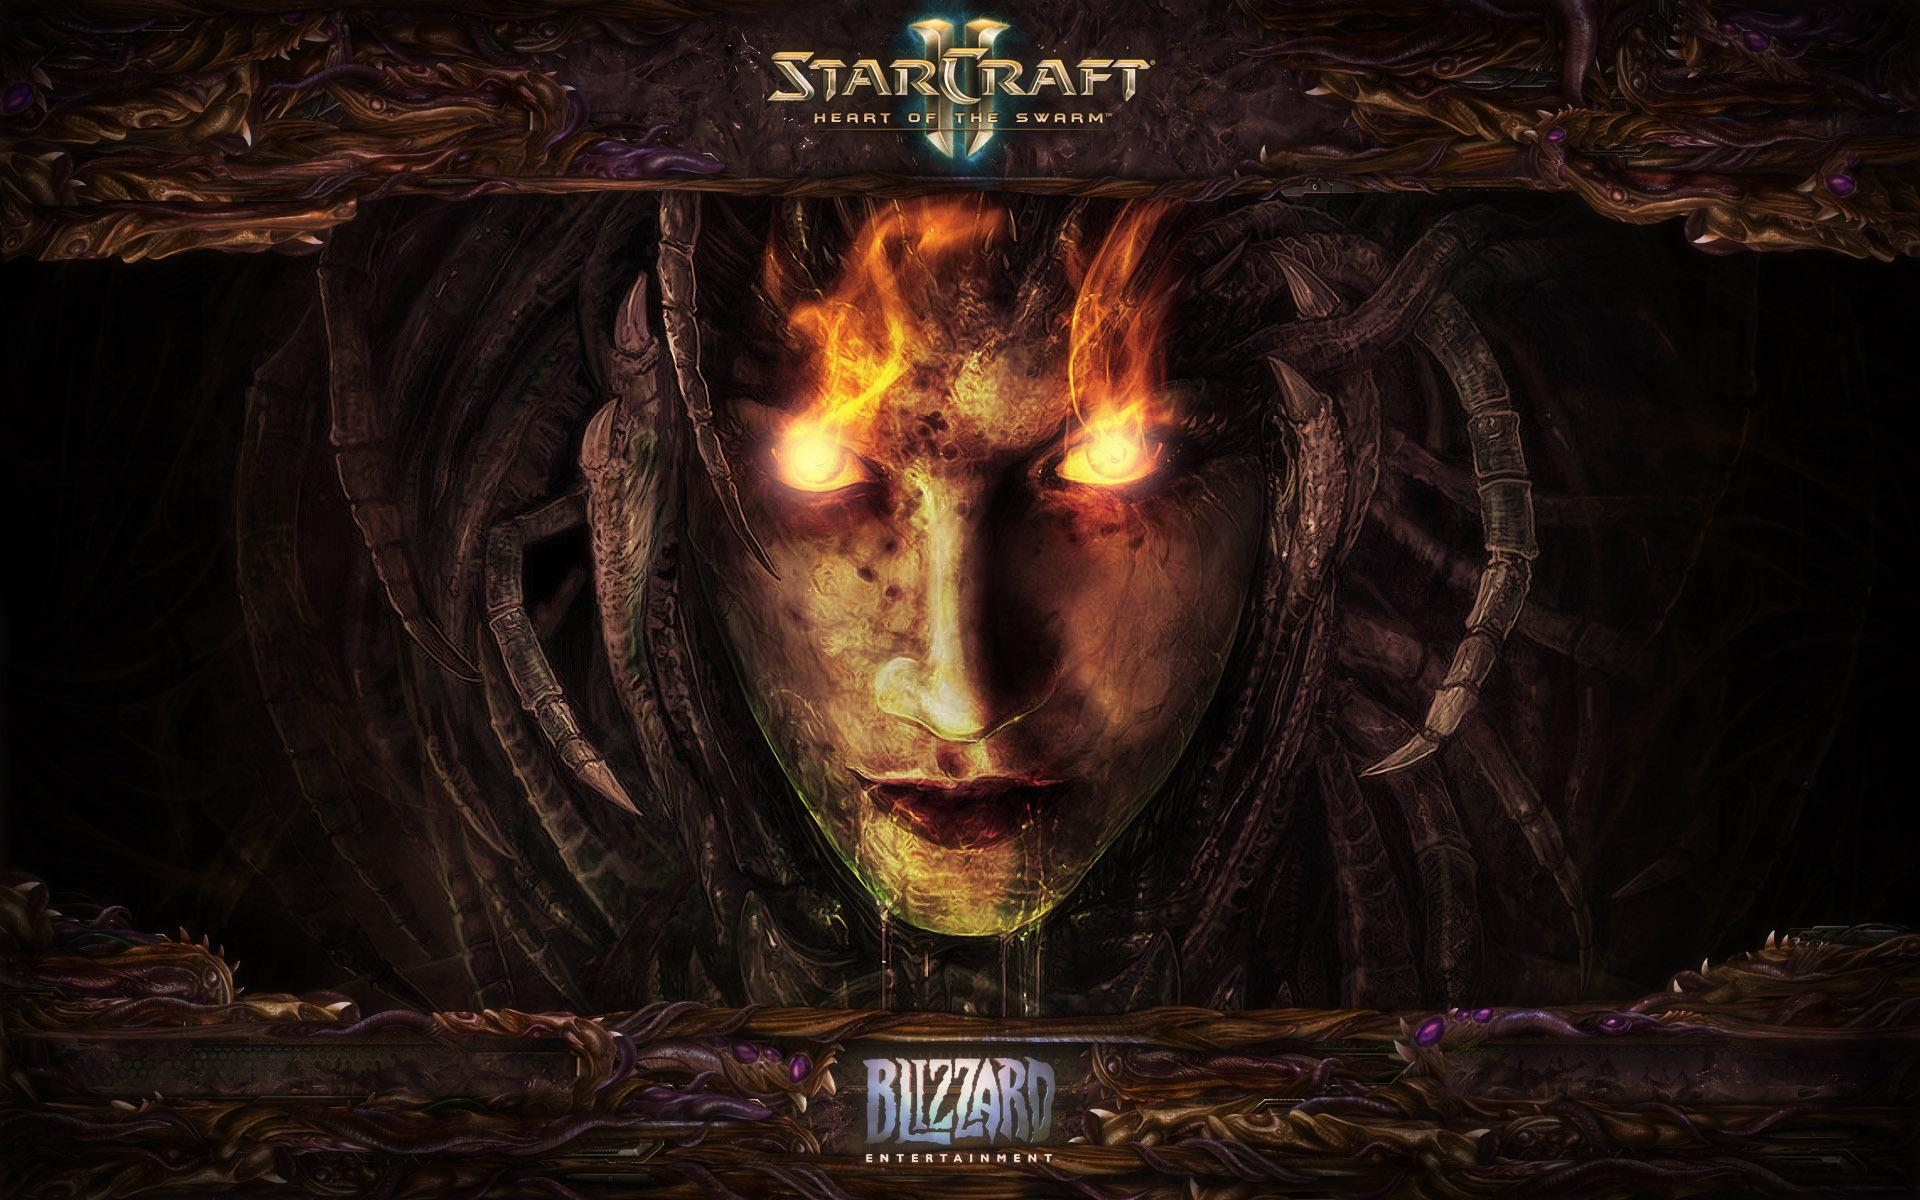 ���� Starcraft 2: heart of the swarm 1920x1200